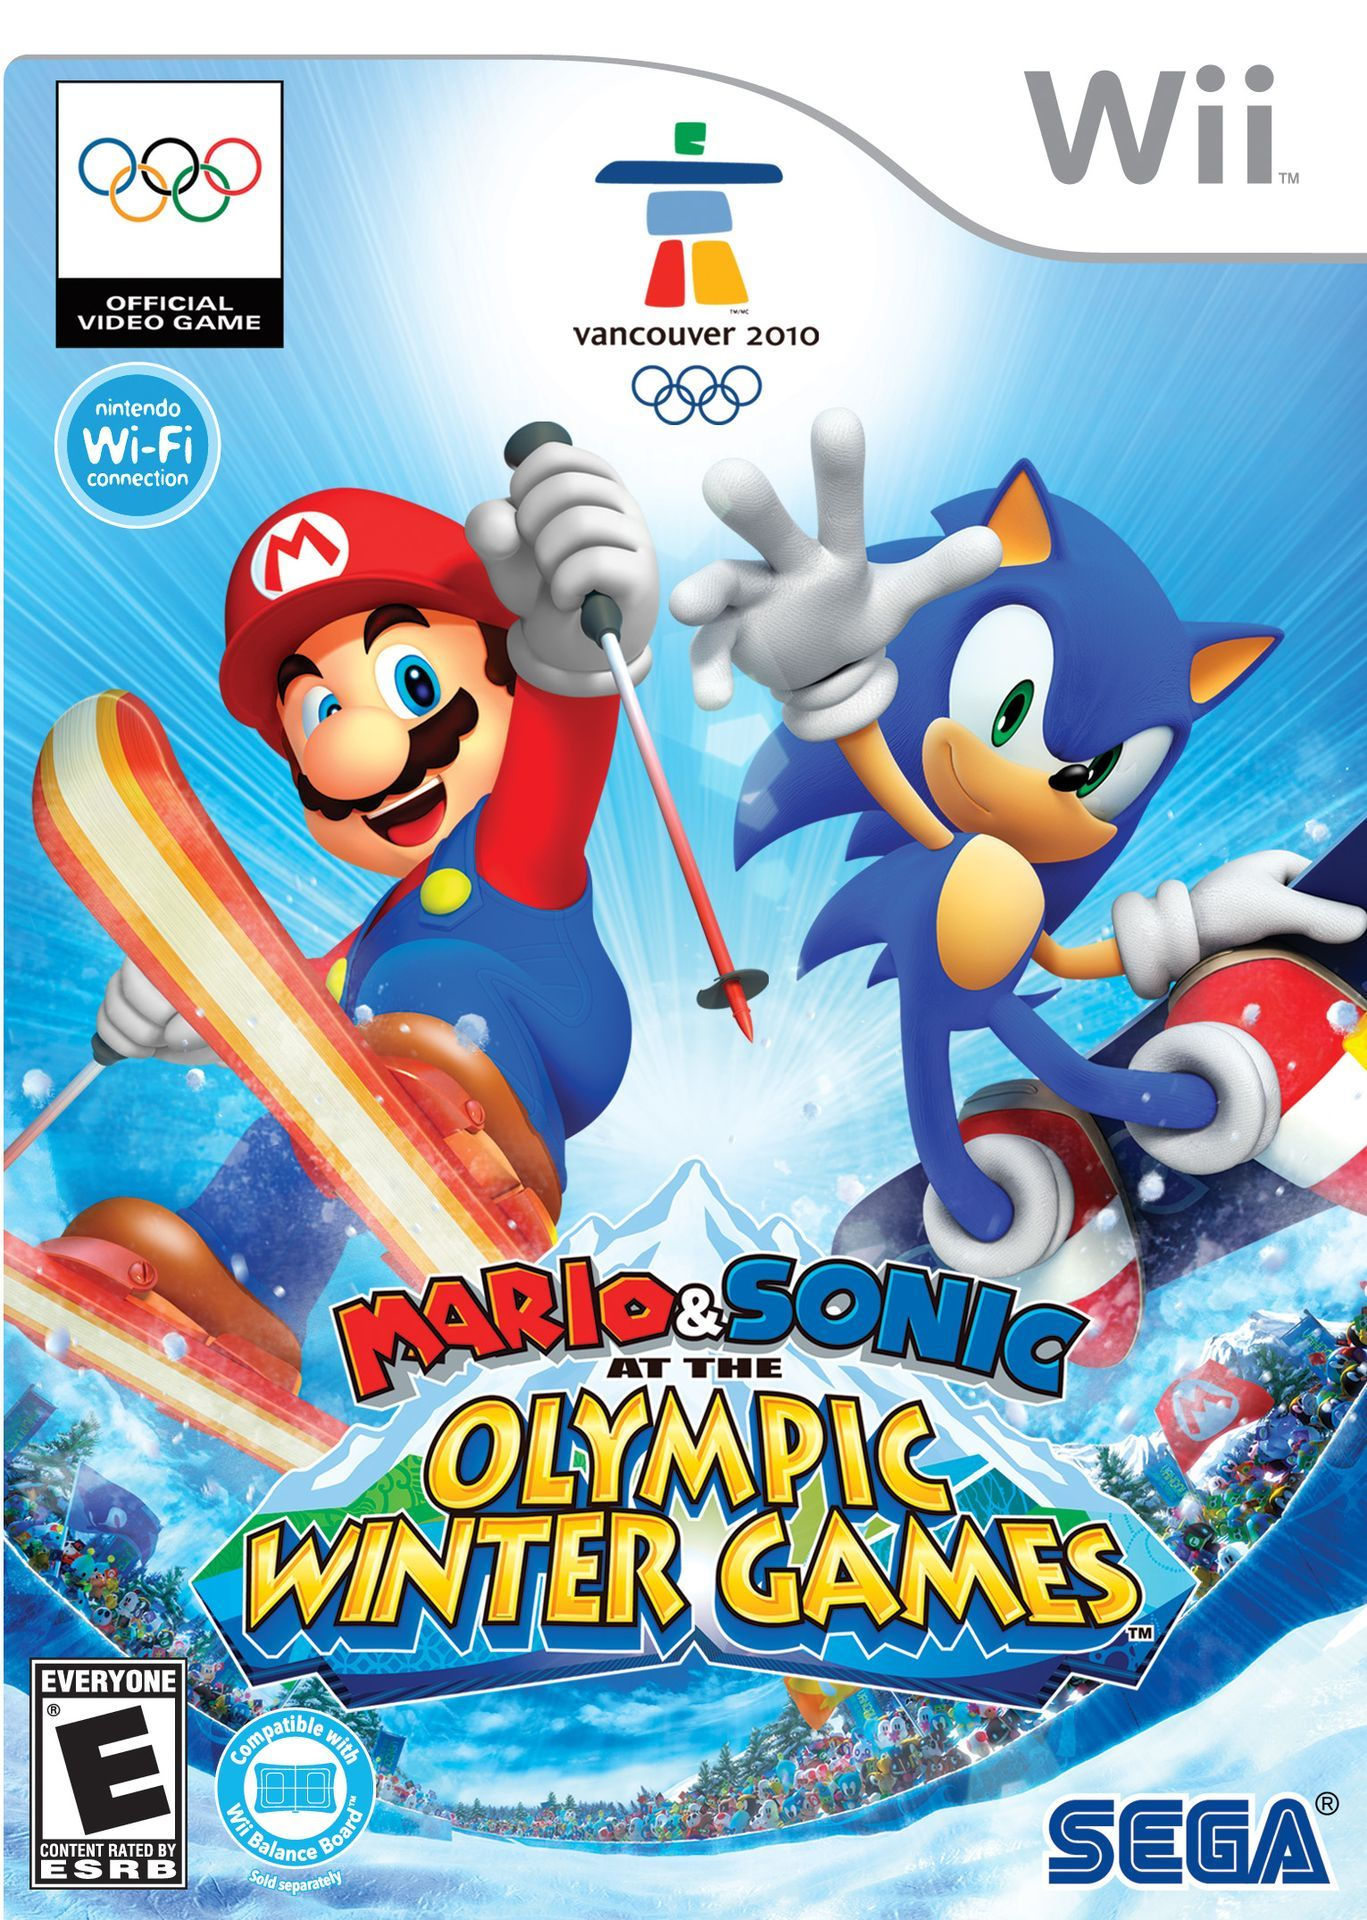 Mario & Sonic at the Olympic Winter Games (Wii) Super